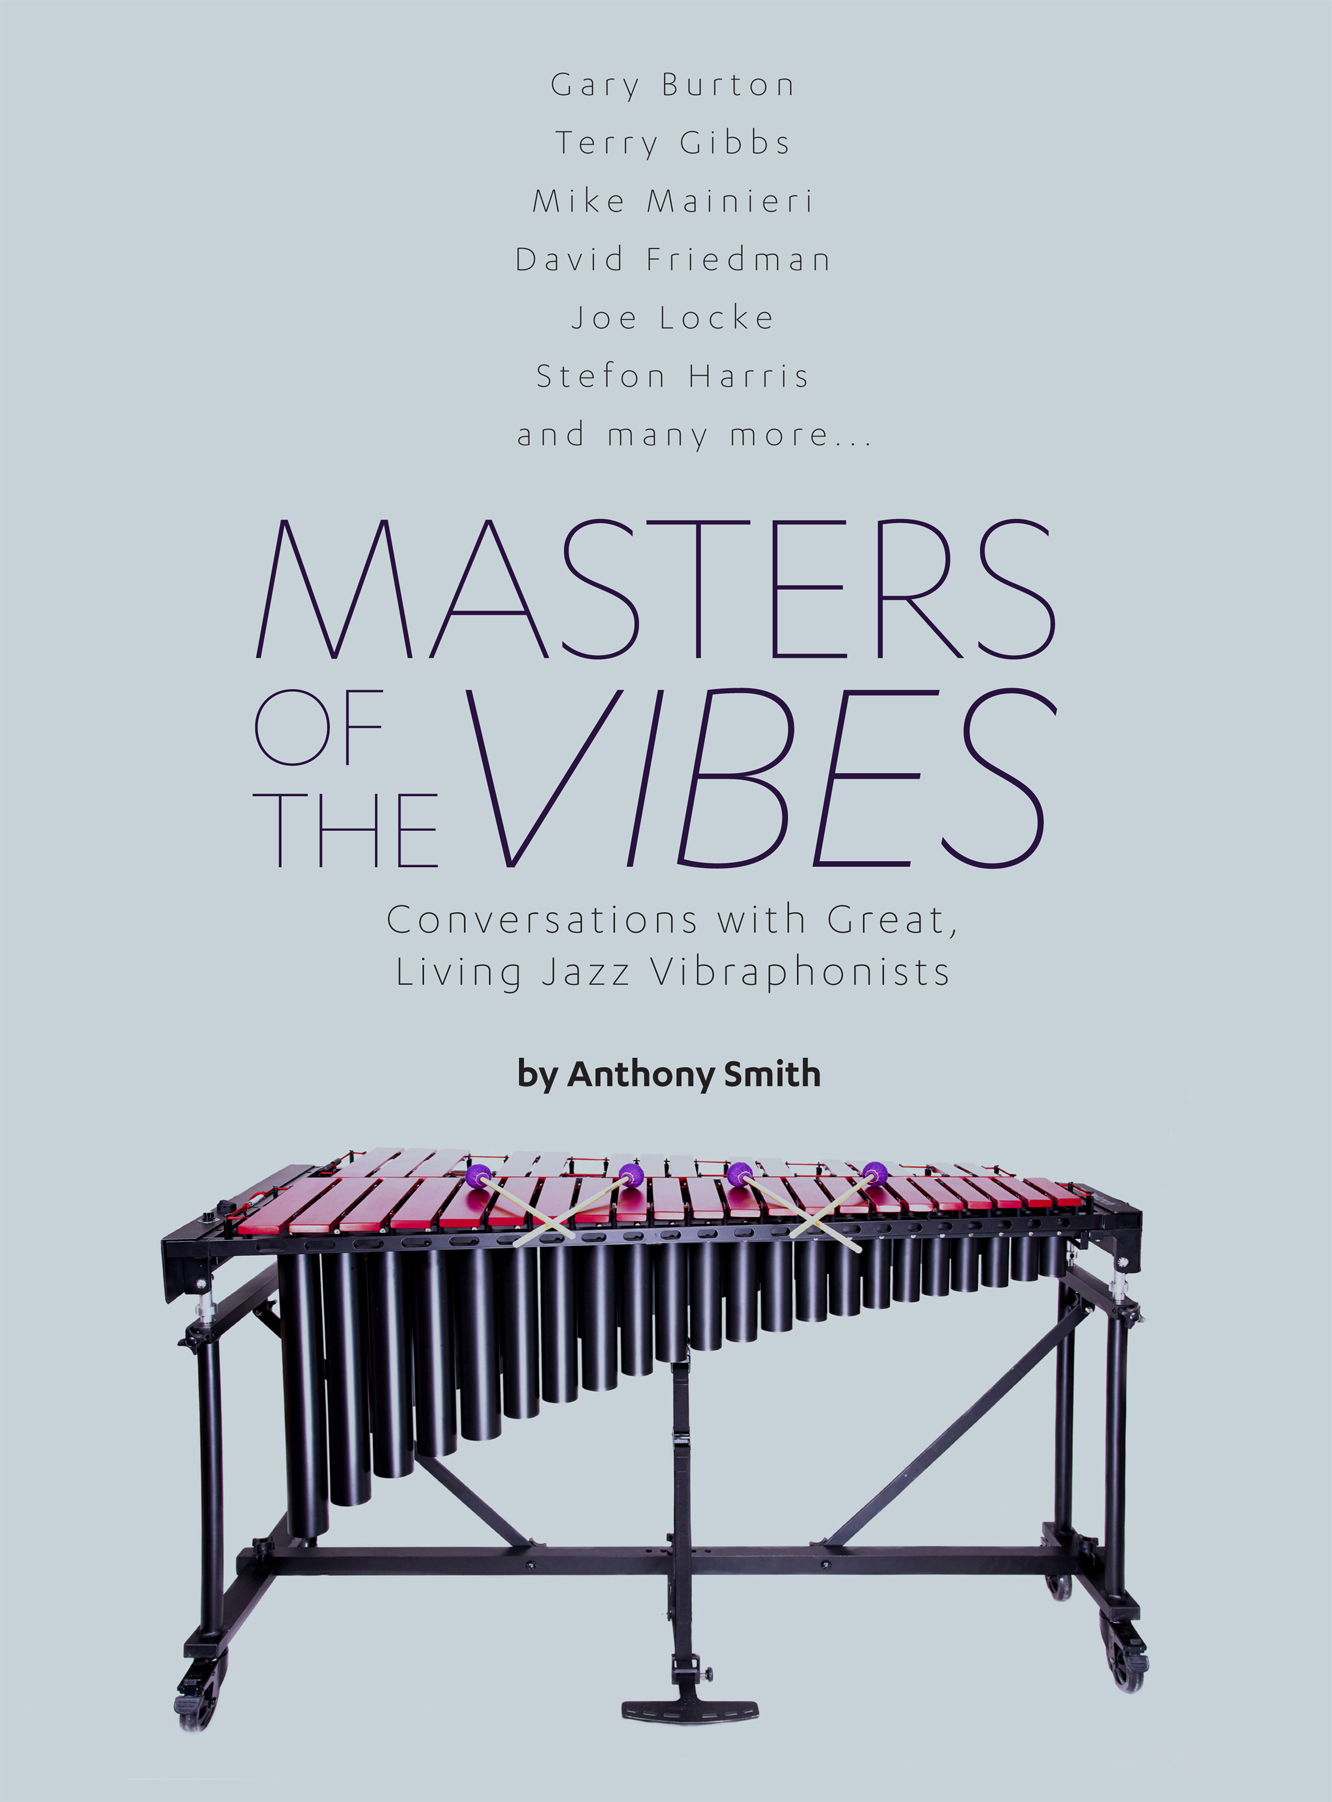 Interview on Masters of the vibes - It was a tremendous honor to share some my love towards vibraphone with the great vibraphonist/writer Anthony Smith along with all my heroes who created the history of vibes. The book has been released few months ago and you should definitely check it out! More about the book - Masters of the Vibes is a celebration of the vibraphone and the artists who play it on the highest level. Musician/author Anthony Smith leads readers on an entertaining, informative journey through the history of this beautiful sounding, but sometimes overlooked, instrument through stimulating conversations with a wide variety of vibes players... from icons and legends to rising stars and promising newcomers. The result is a book filled with wisdom, humor, detailed musical knowledge and refreshing insights into not only the artistic process, but also the human condition itself. Smith and his passionate, mallet-playing colleagues have created an invaluable document -- a must-read for vibes lovers, students, professionals and anyone interested in exploring the rich lives and careers of great artists.